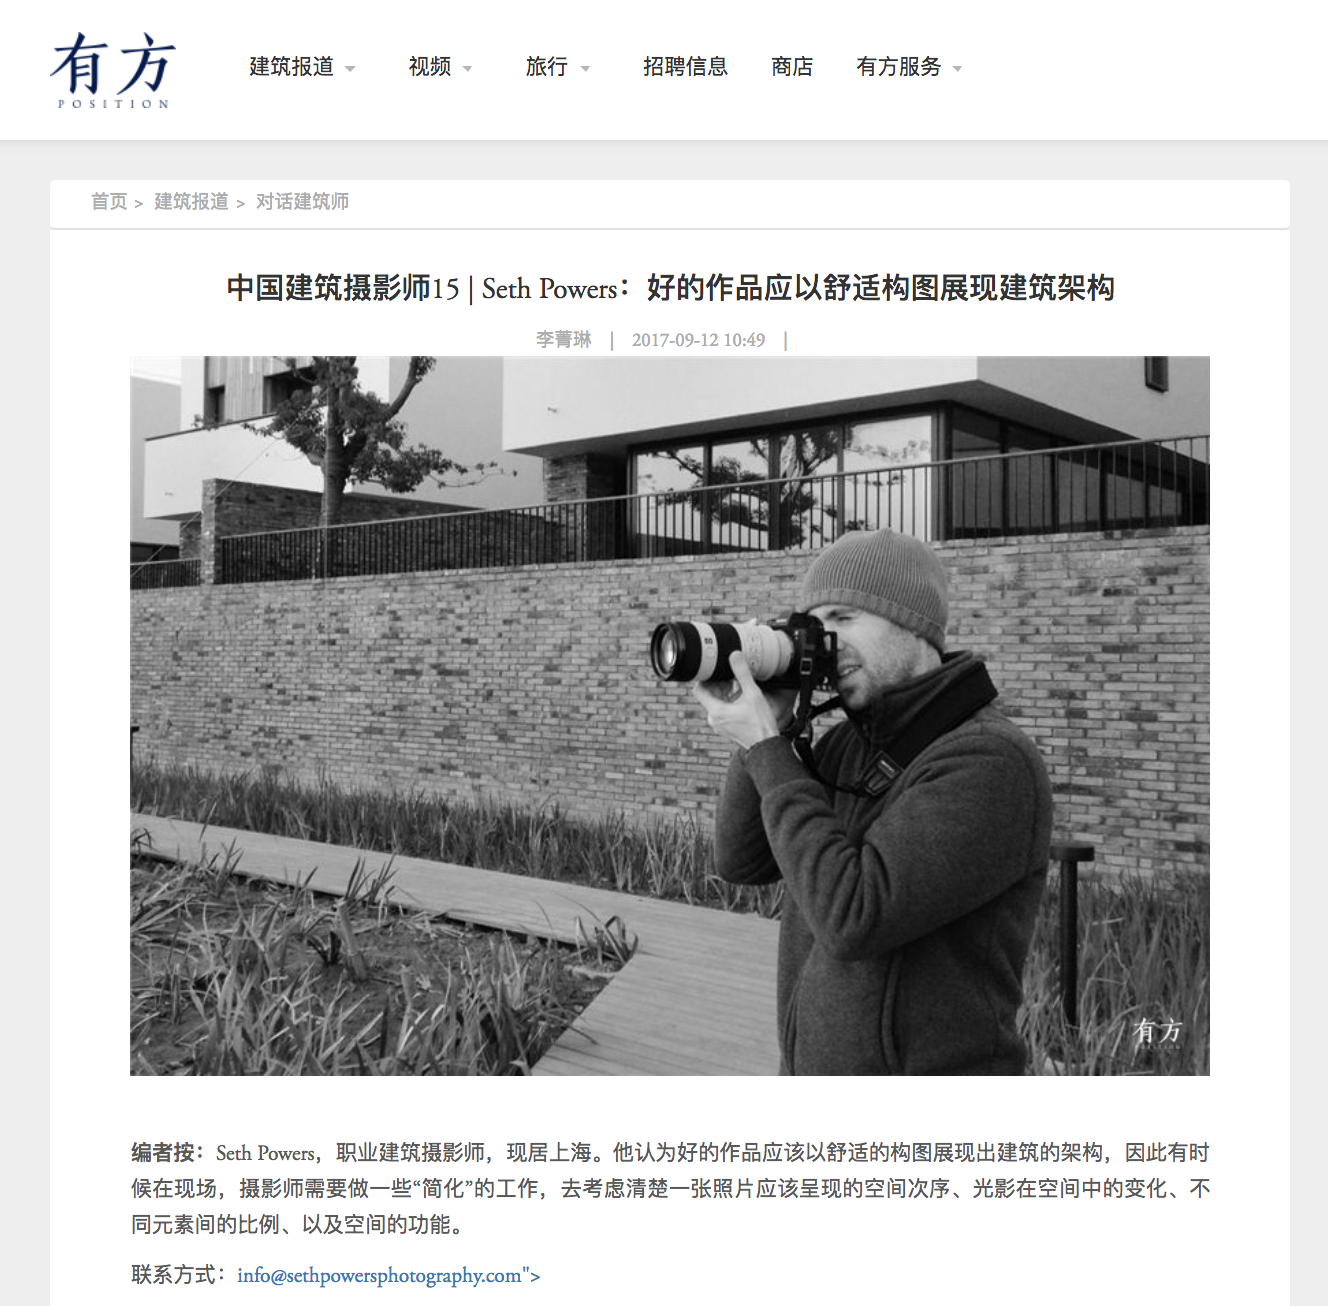 【Interview】China Architecture Photographer Series by ArchiPosition - It was an honor to be interviewed for ArchiPosition's China Architecture Photographer series. They profile some of the leading architecture photographers in the industry here in China and I'm proud to be among such talent. Big thanks to the editors!— September 2017